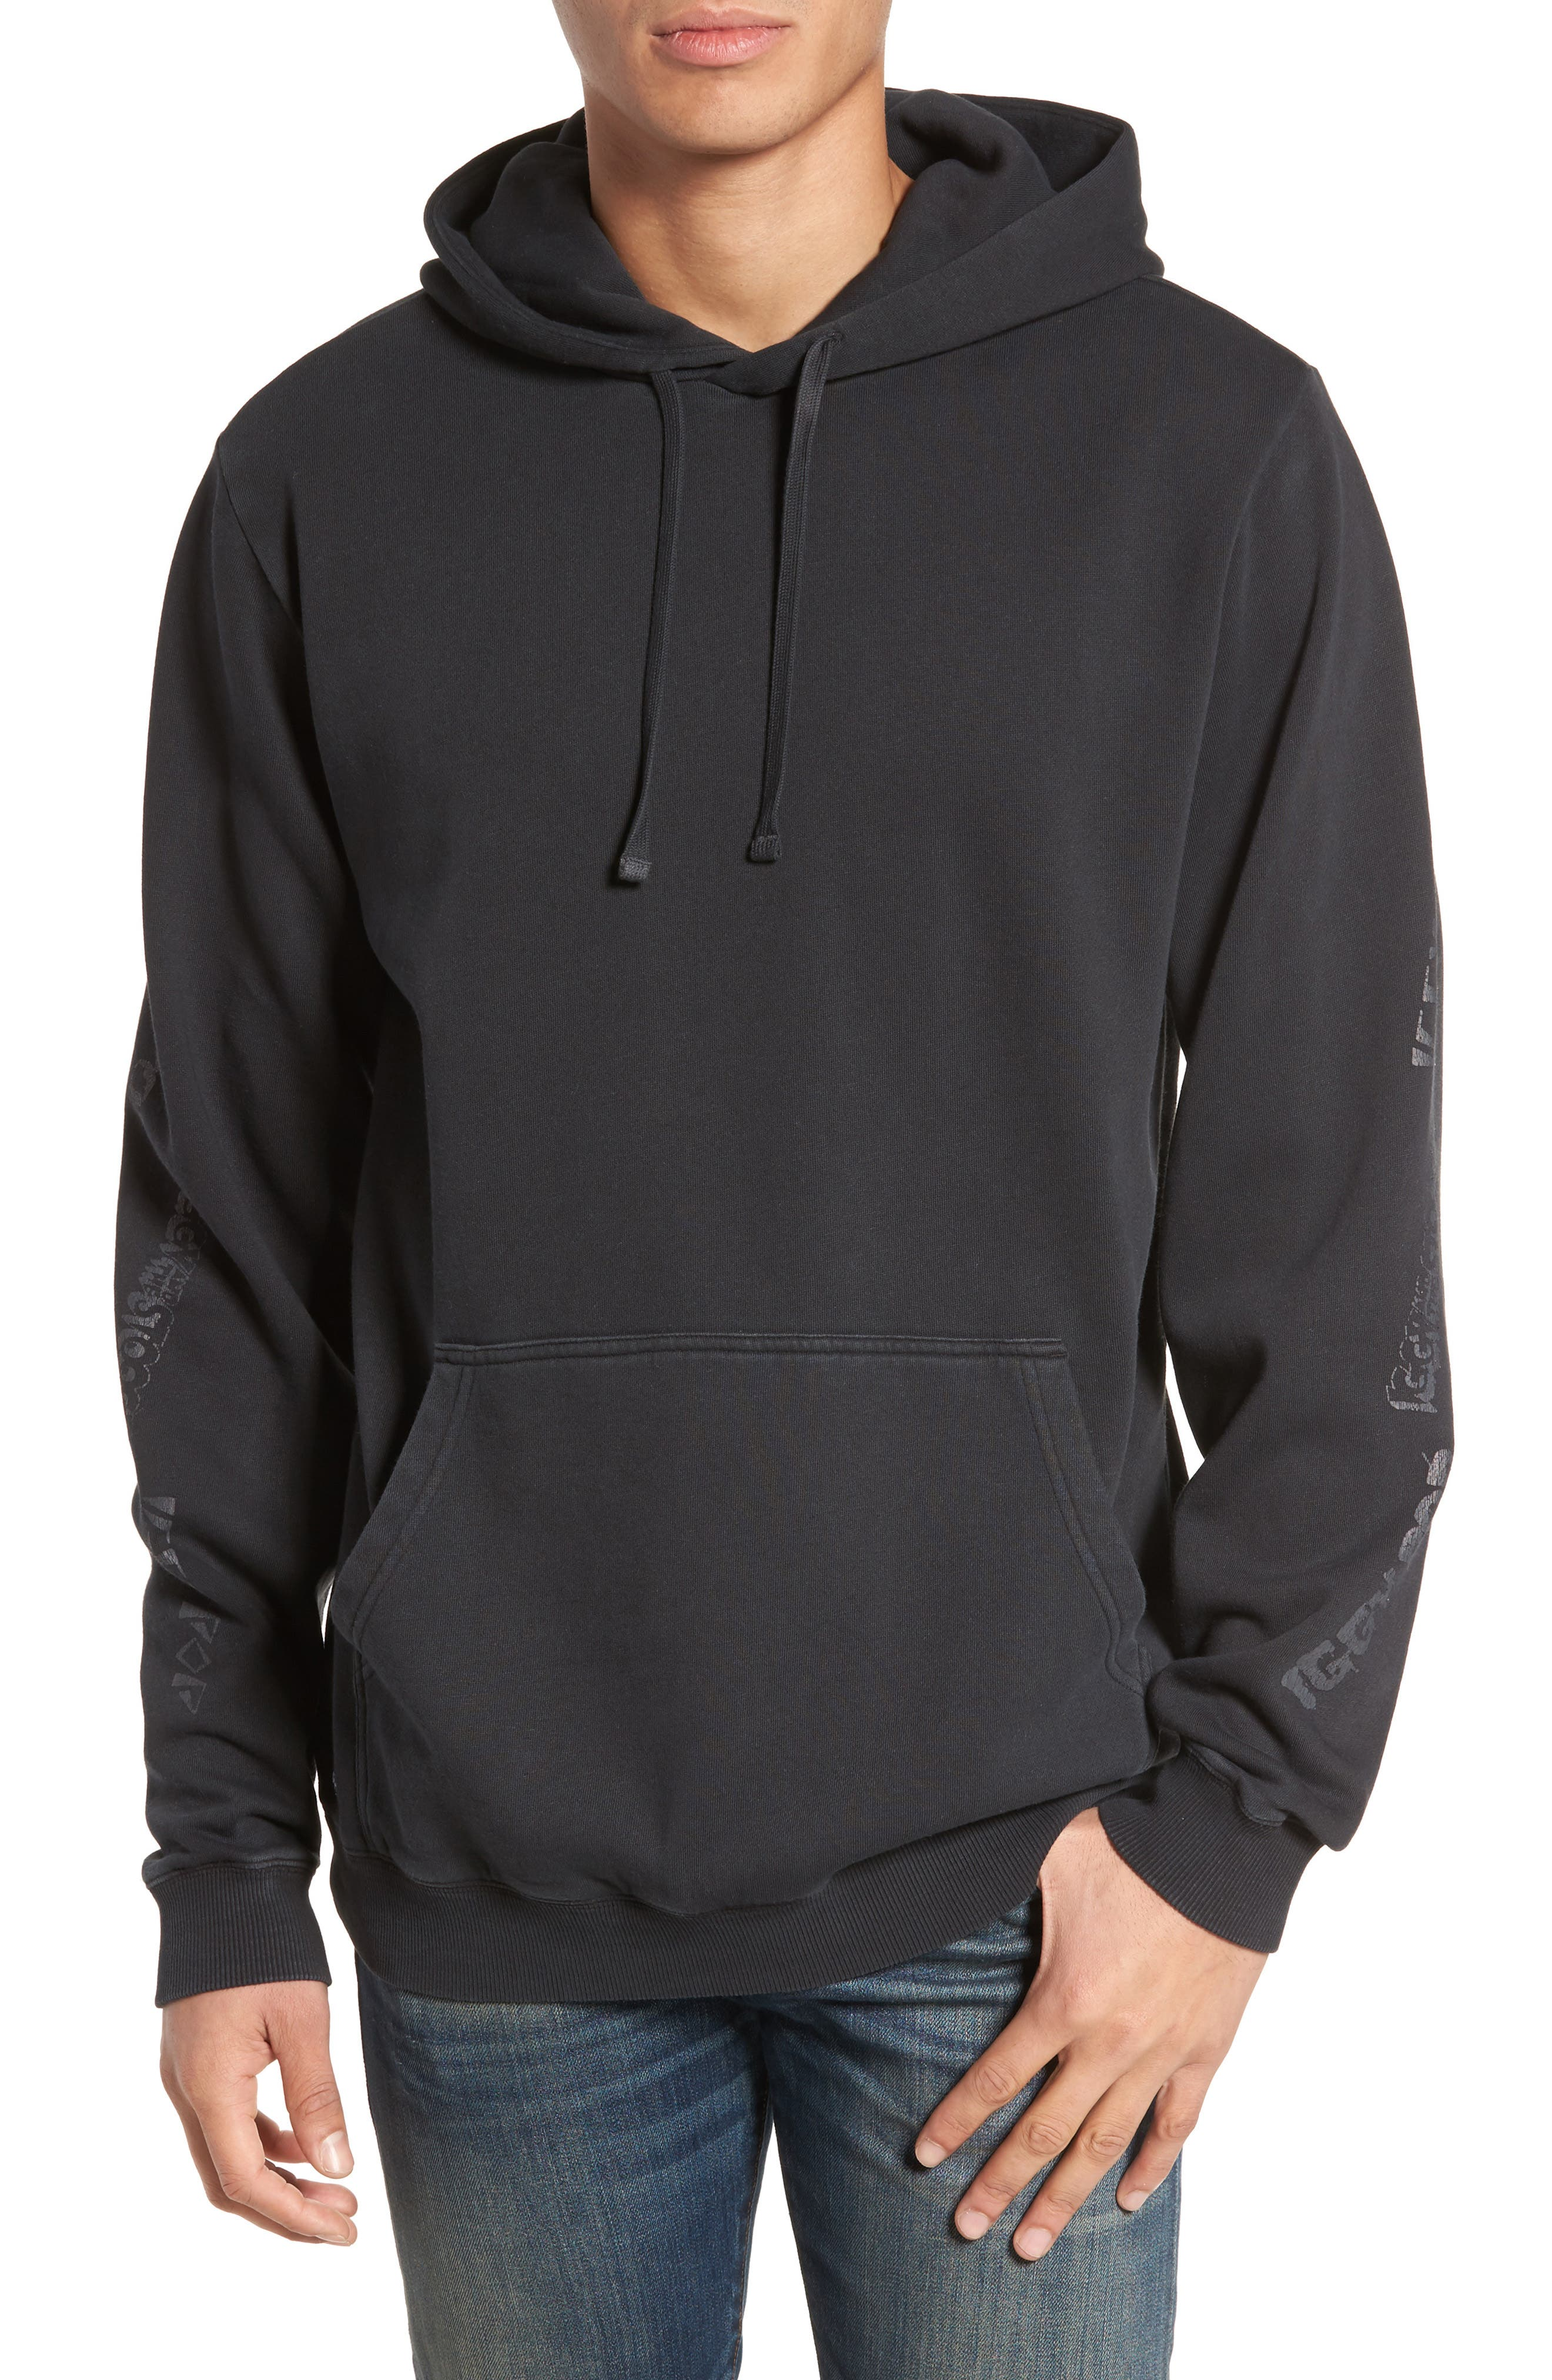 x Iggy Pop LAB Hoodie,                             Main thumbnail 1, color,                             Black